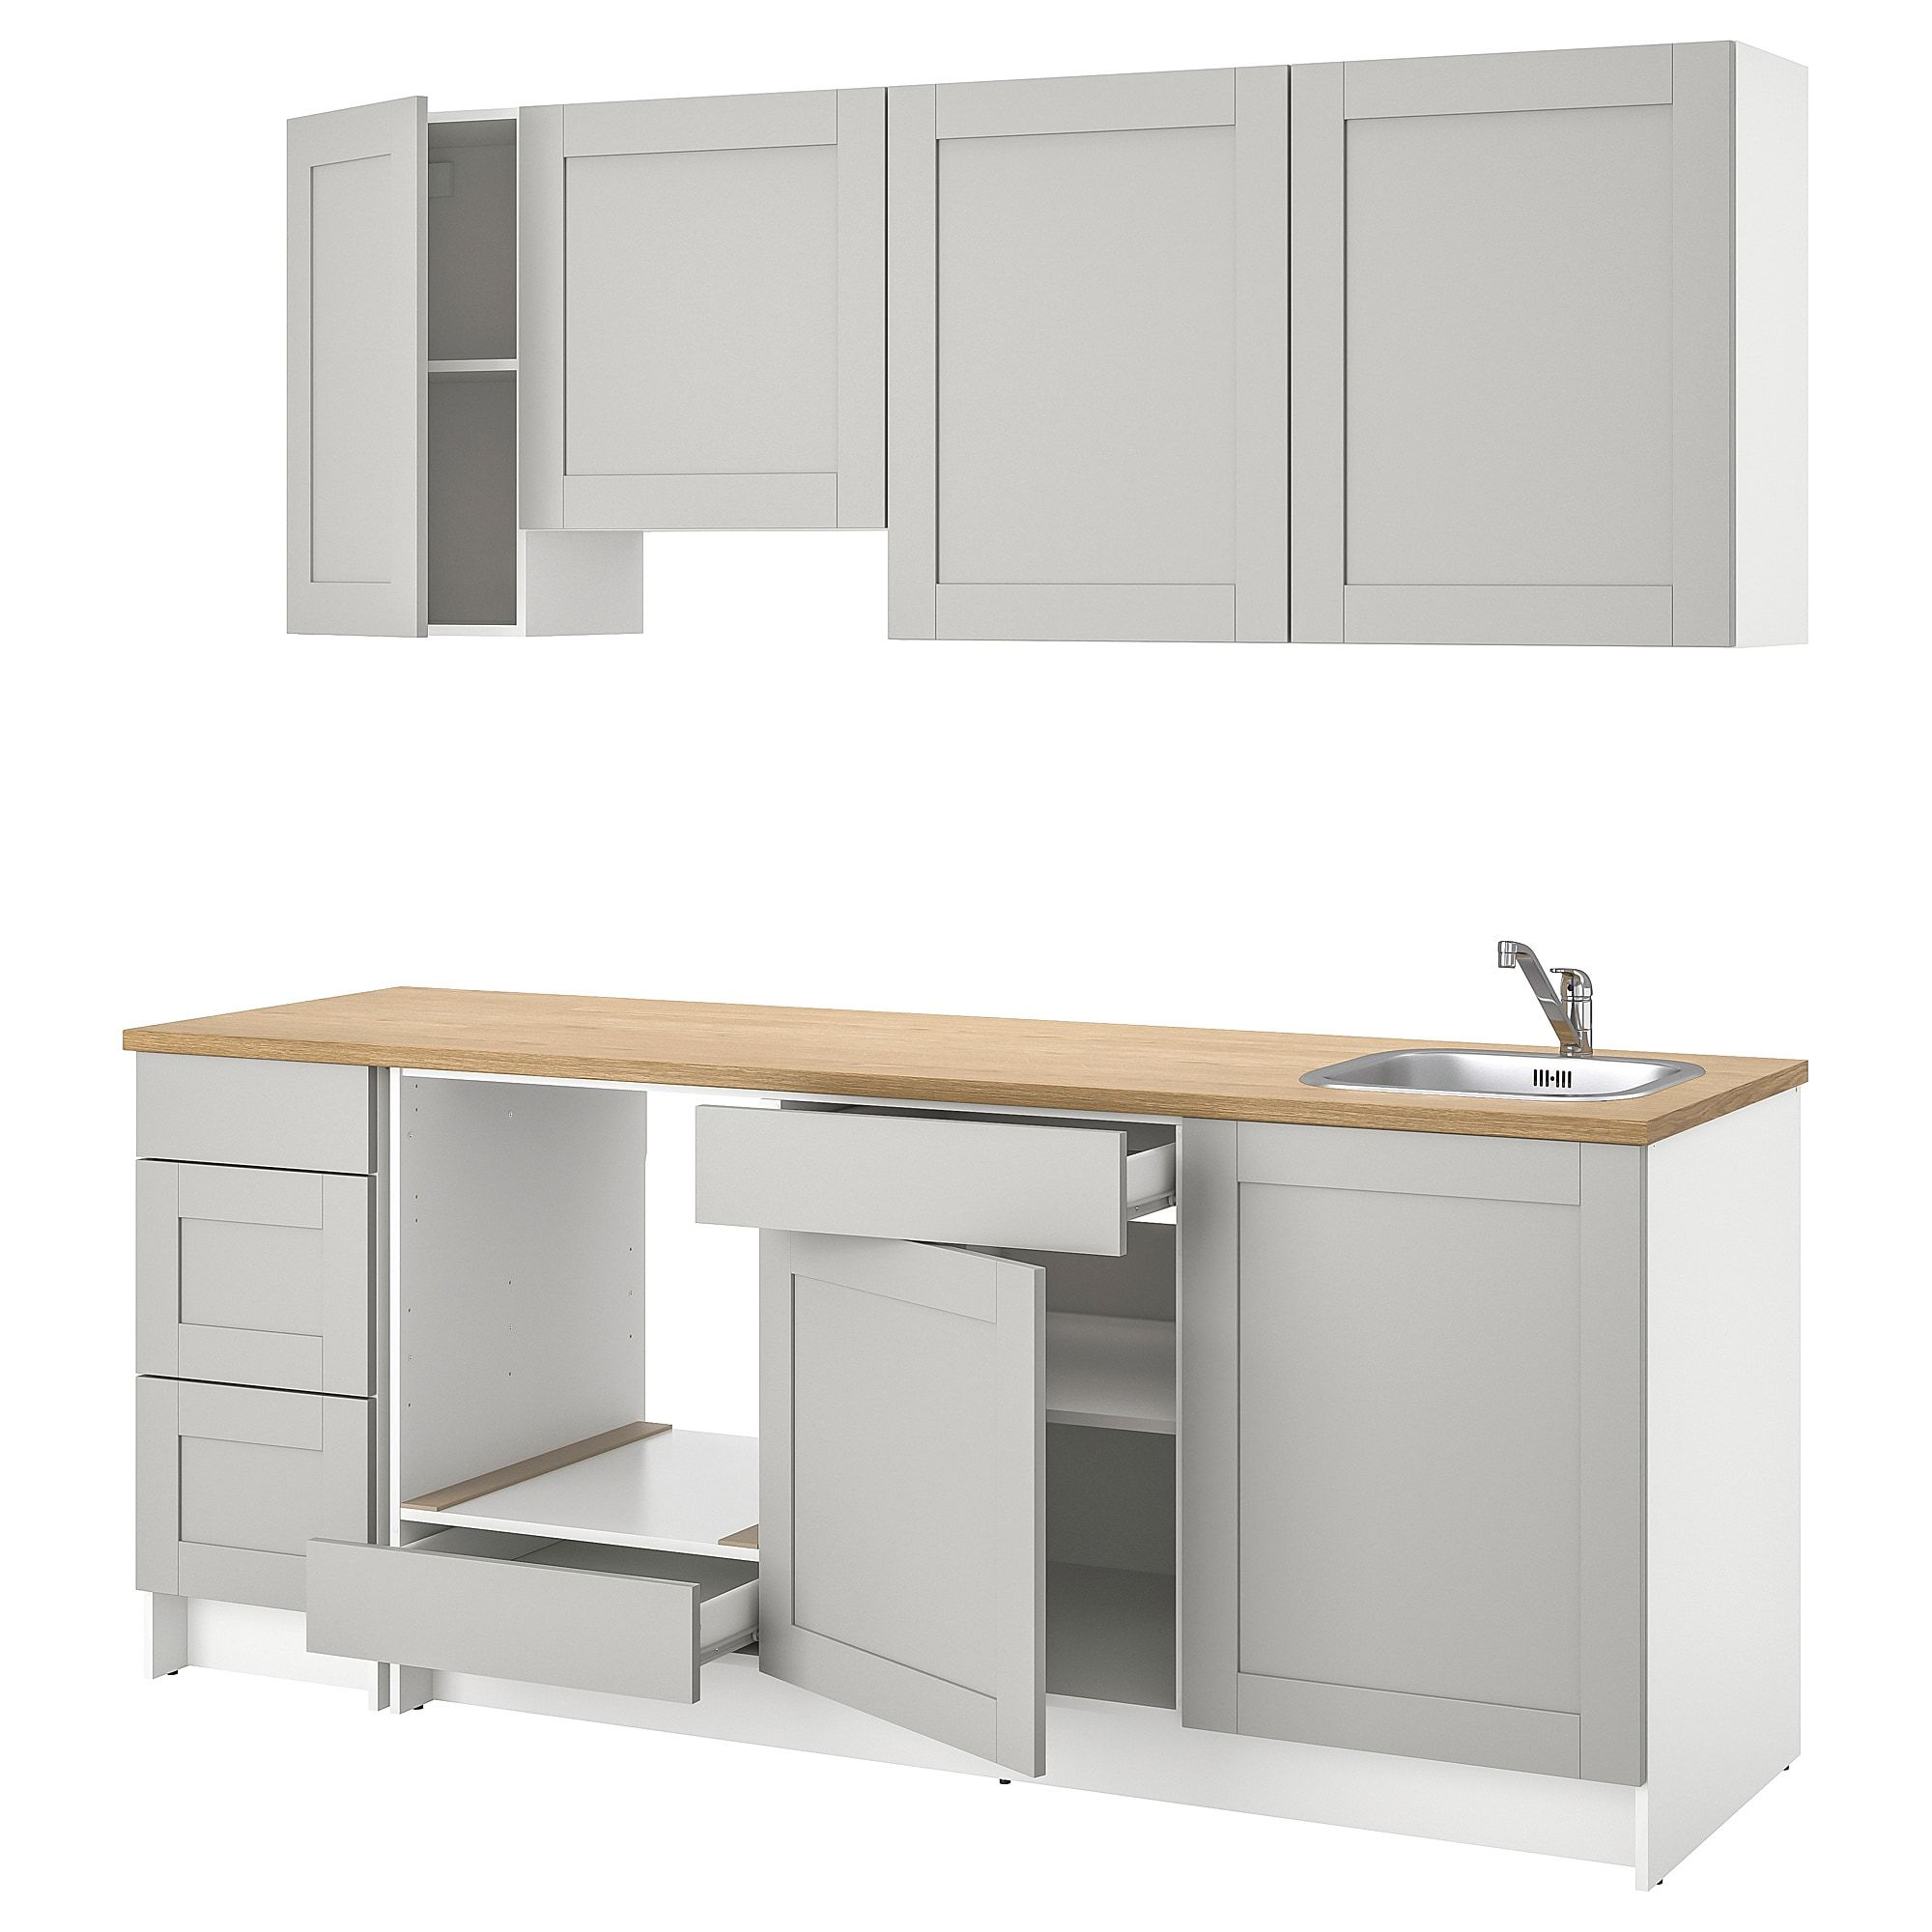 Best Ikea Knoxhult Kitchen Grey Only To Be Used With Glass 640 x 480